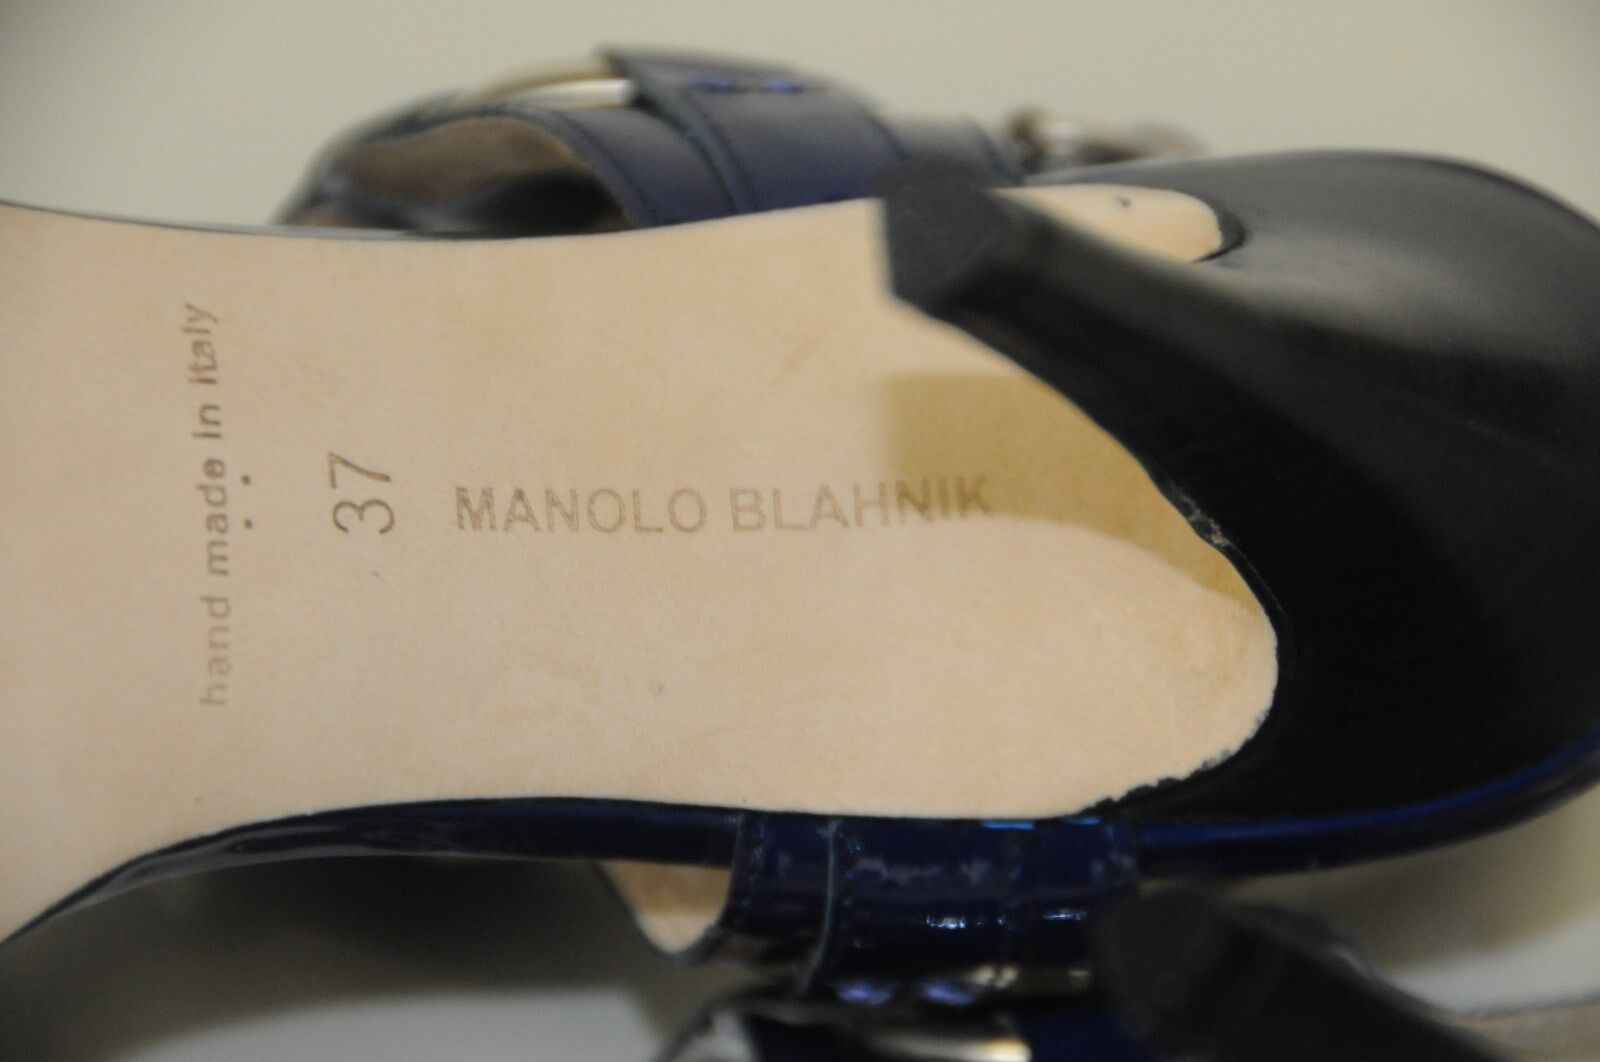 965 New New New Manolo Blahnik Navy bleu Patent Leather Strappy Sandals chaussures 37 8290e2